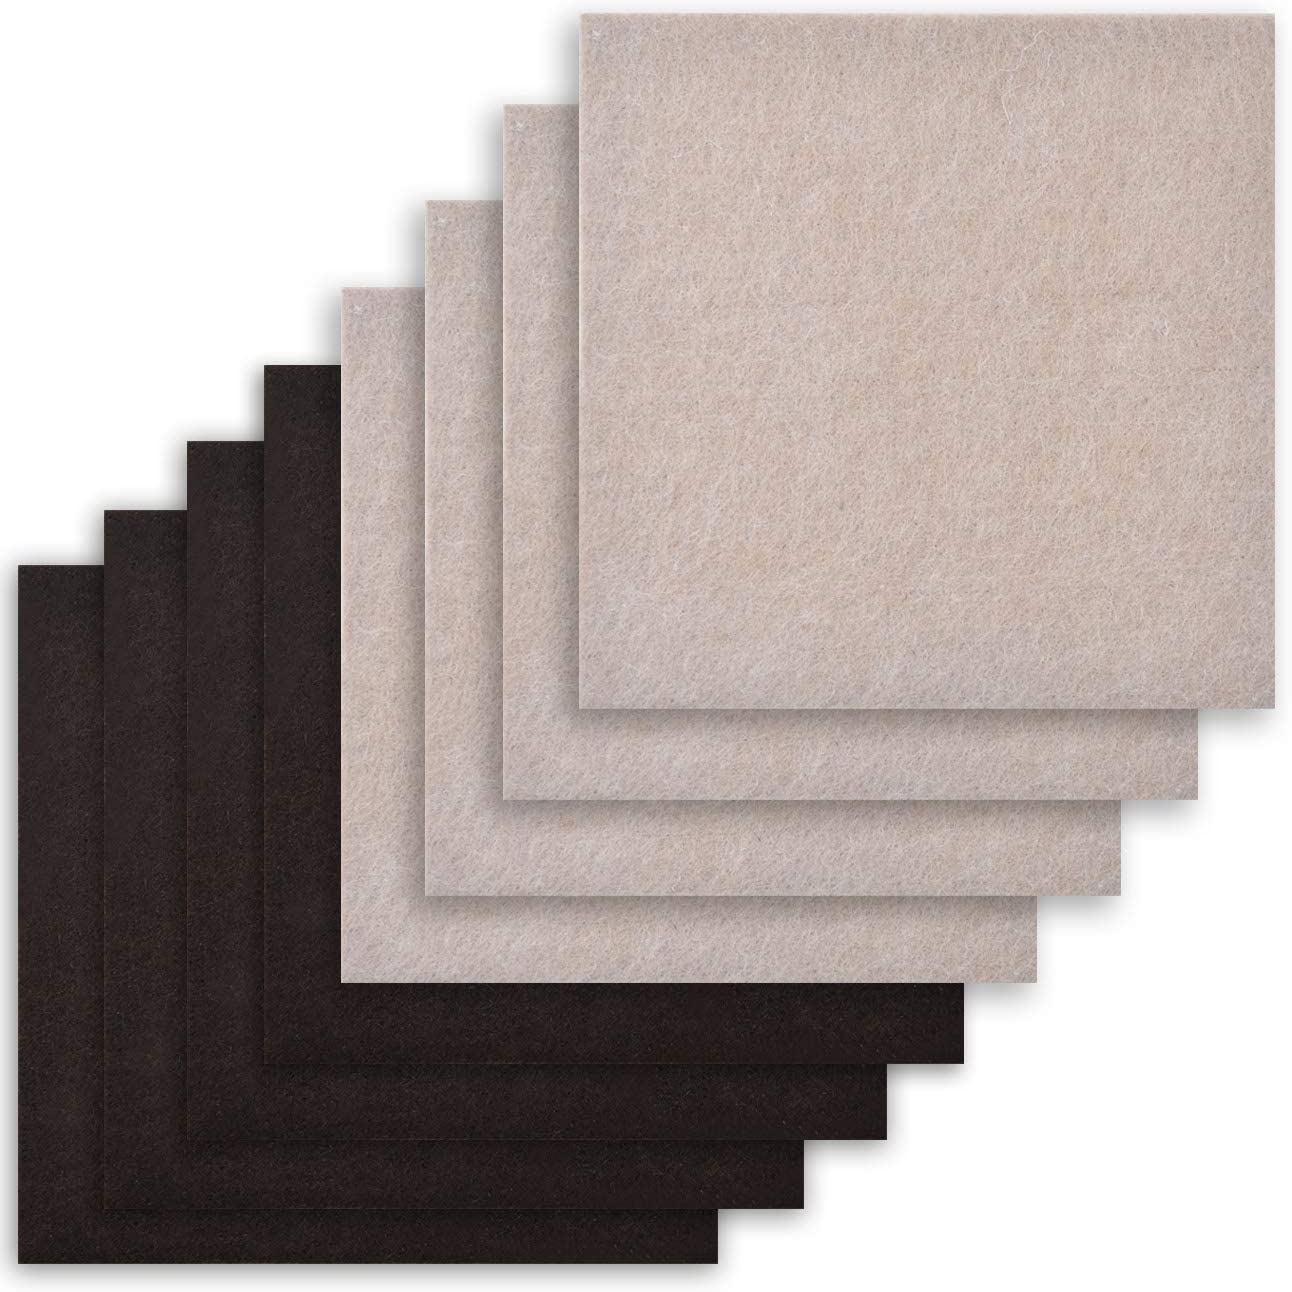 8 Pack - 2 Colors Self Adhesive Square Furniture Felt Pad Surface Protector for Hardwood, Tile, Laminated Floor - Cut into Any Shape - 8 Pack